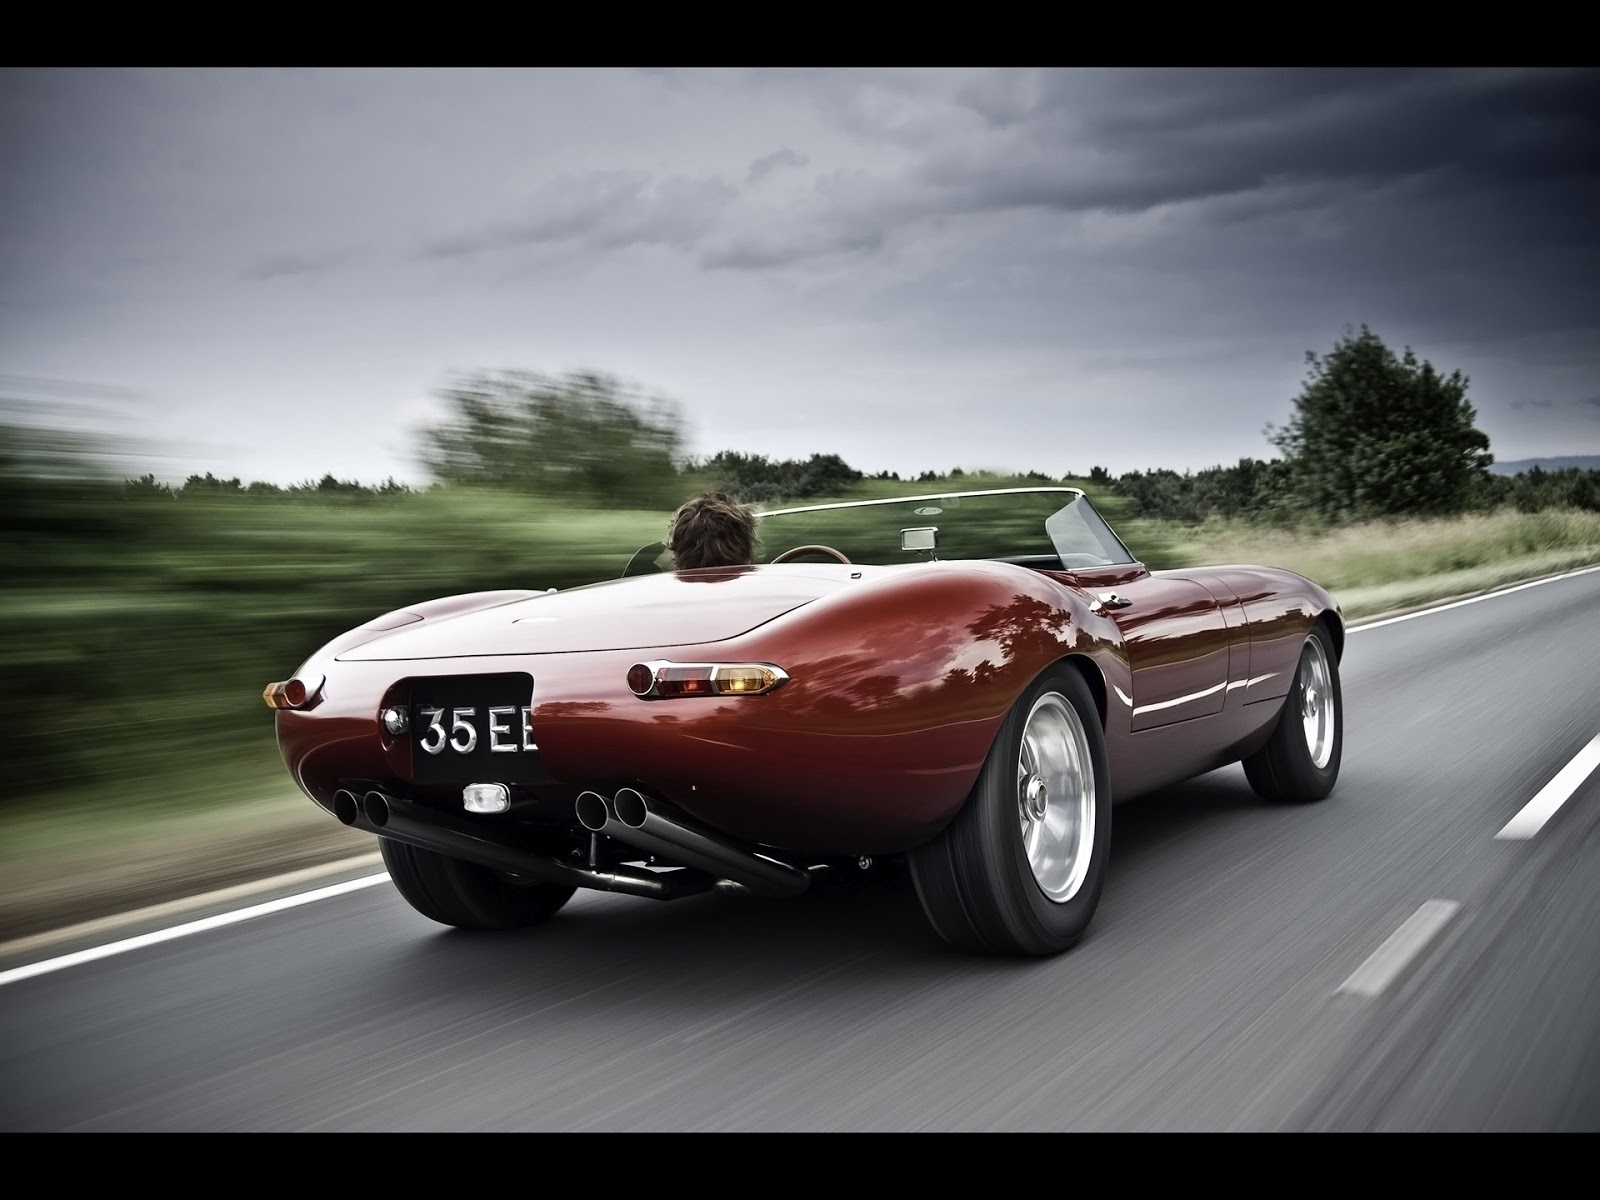 Kane Blog Picz E Type Jaguar Wallpaper HD Wallpapers Download free images and photos [musssic.tk]